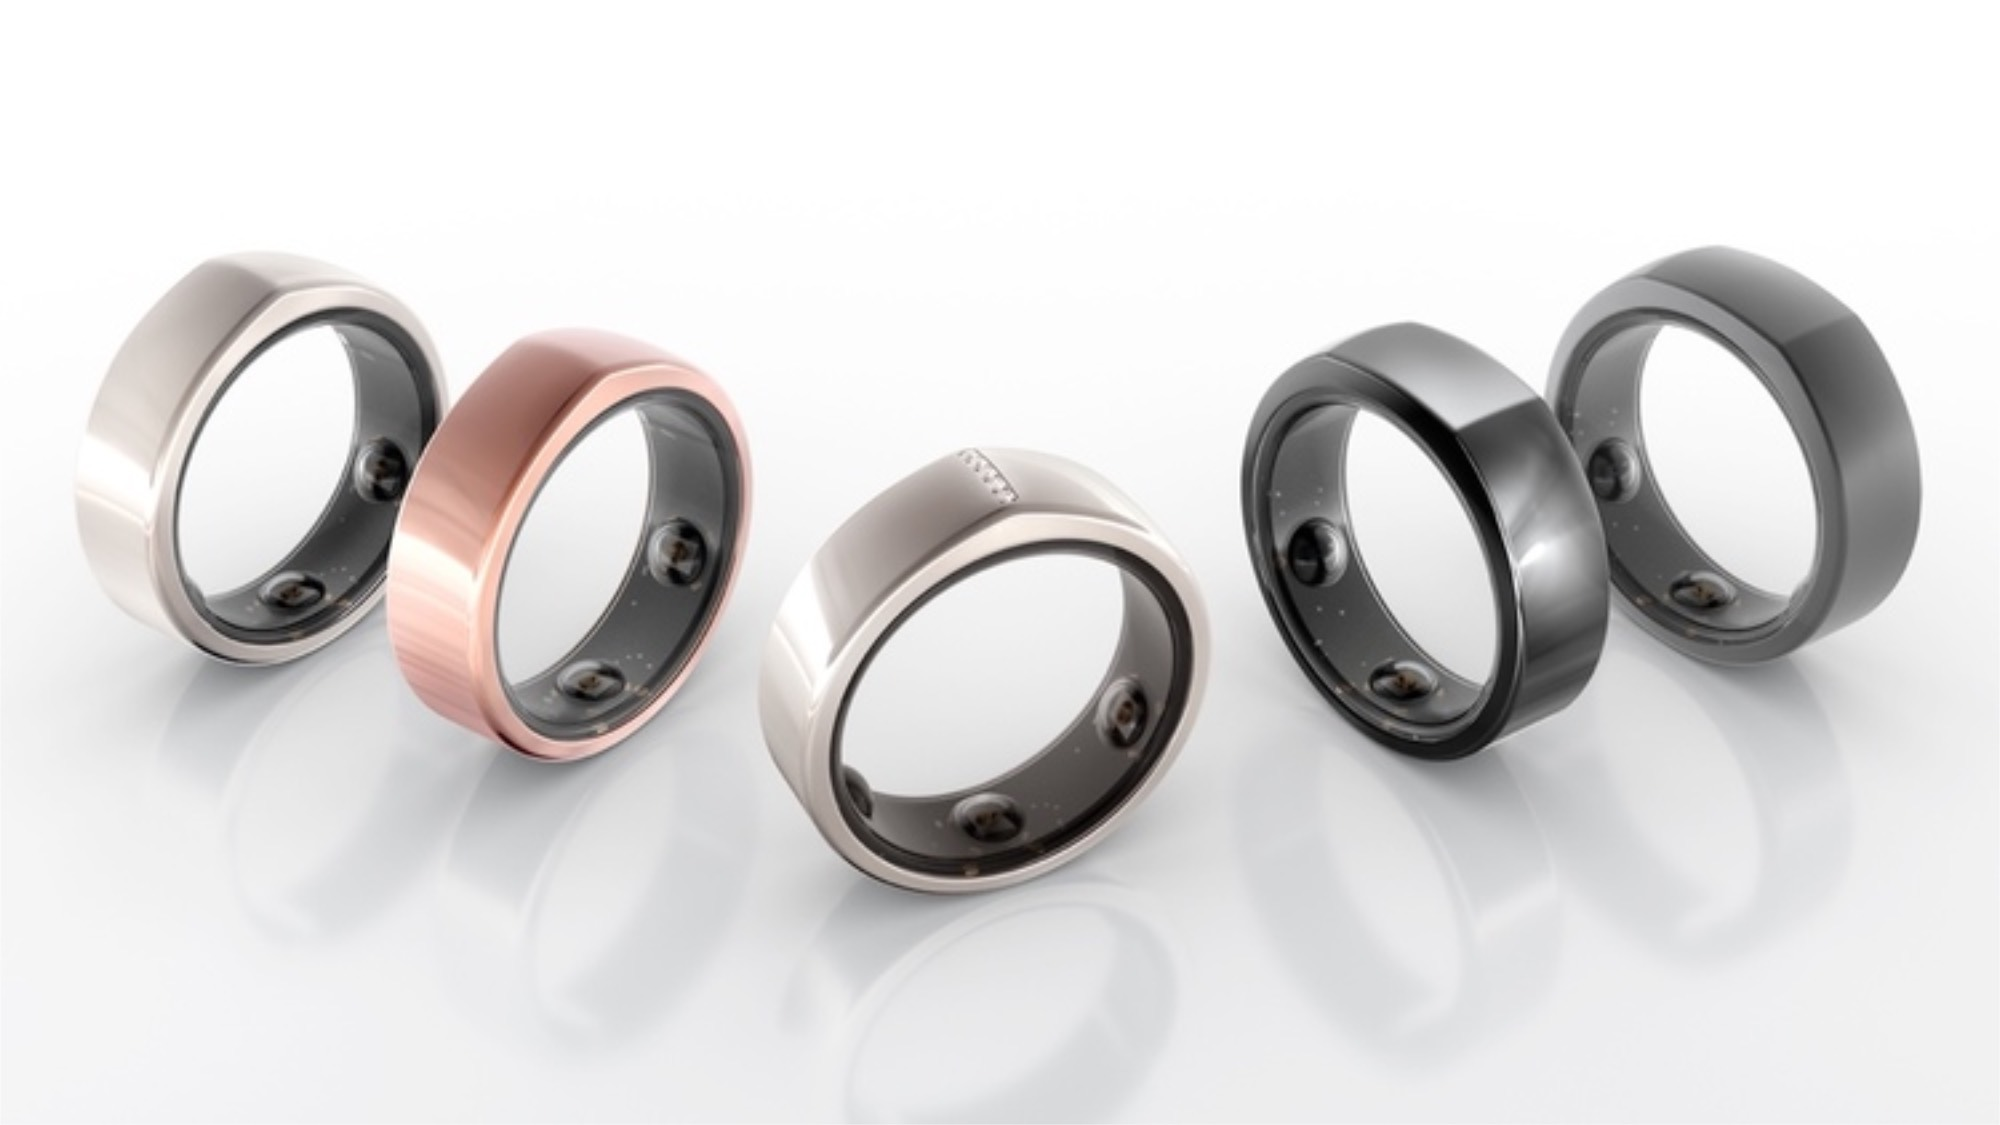 Oura Rings in different colours